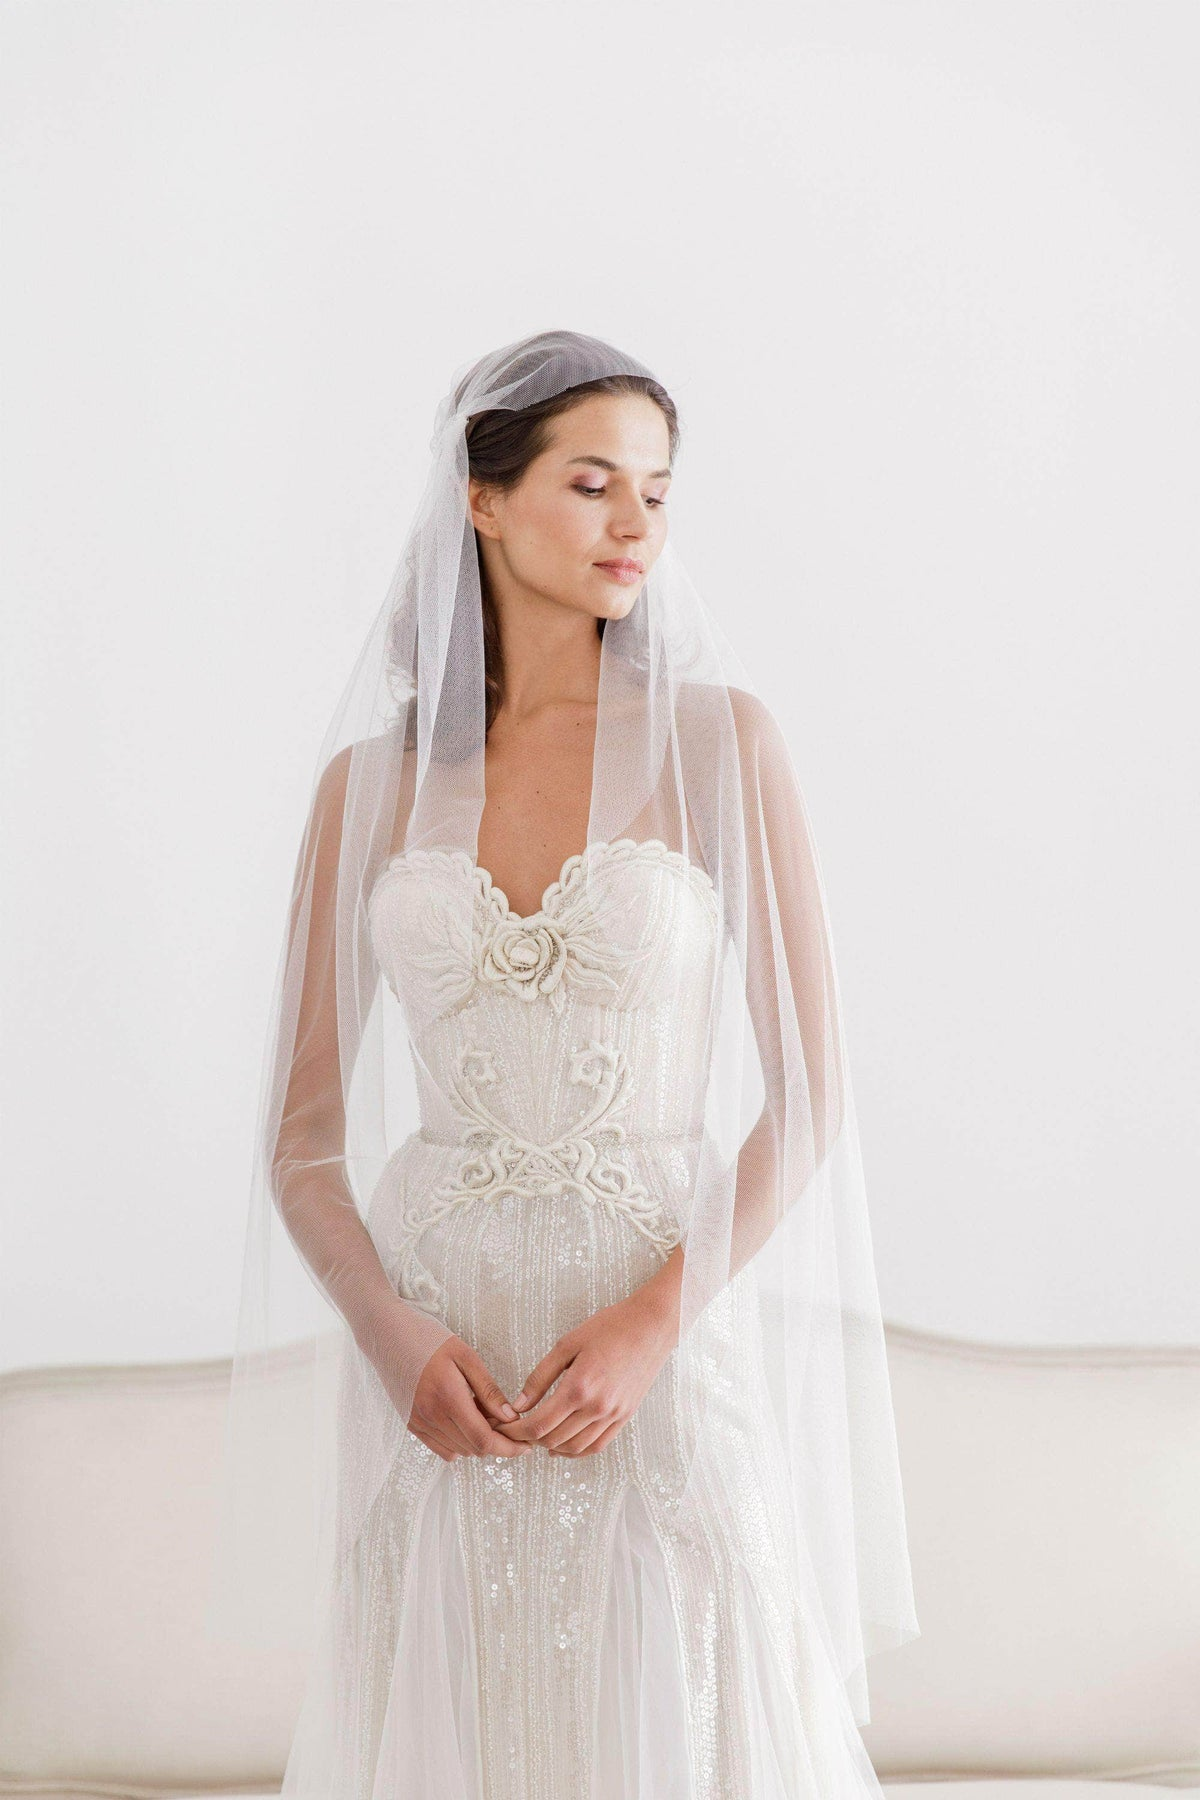 Wedding Veil Silk style juliet cap wedding veil - 'Dorothy'